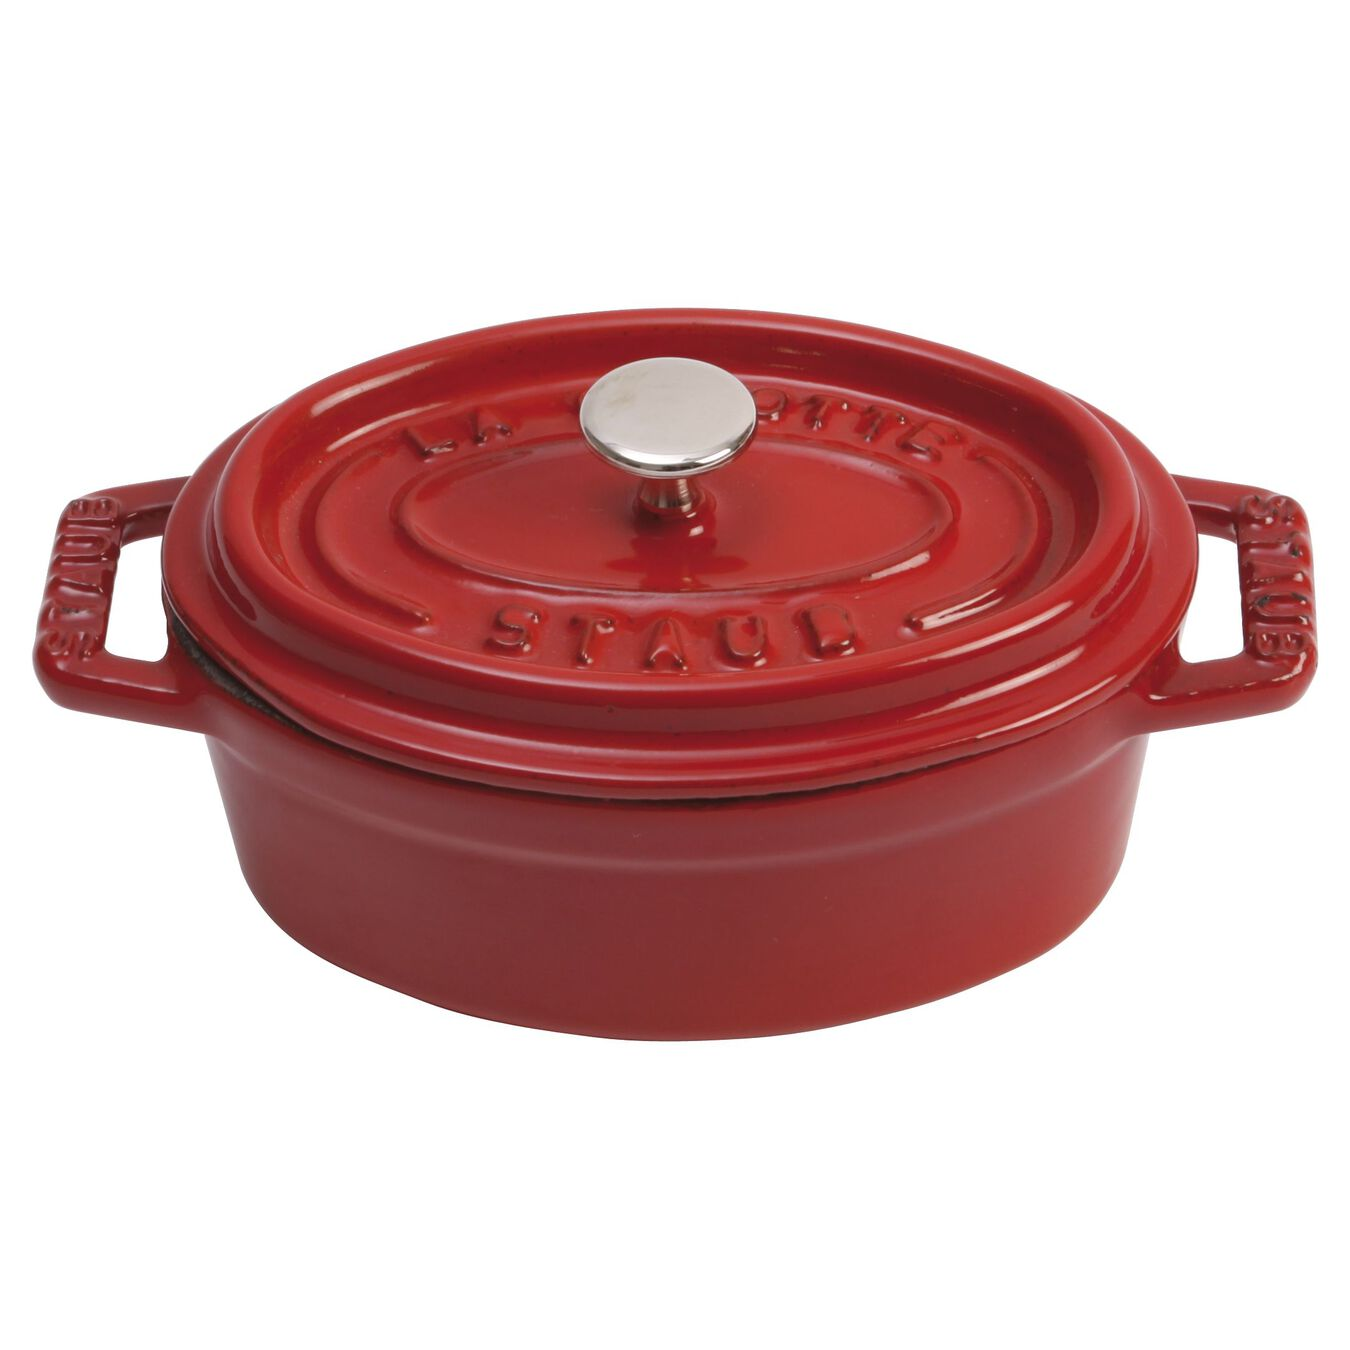 250 ml Cast iron oval Mini Cocotte, Cherry,,large 1